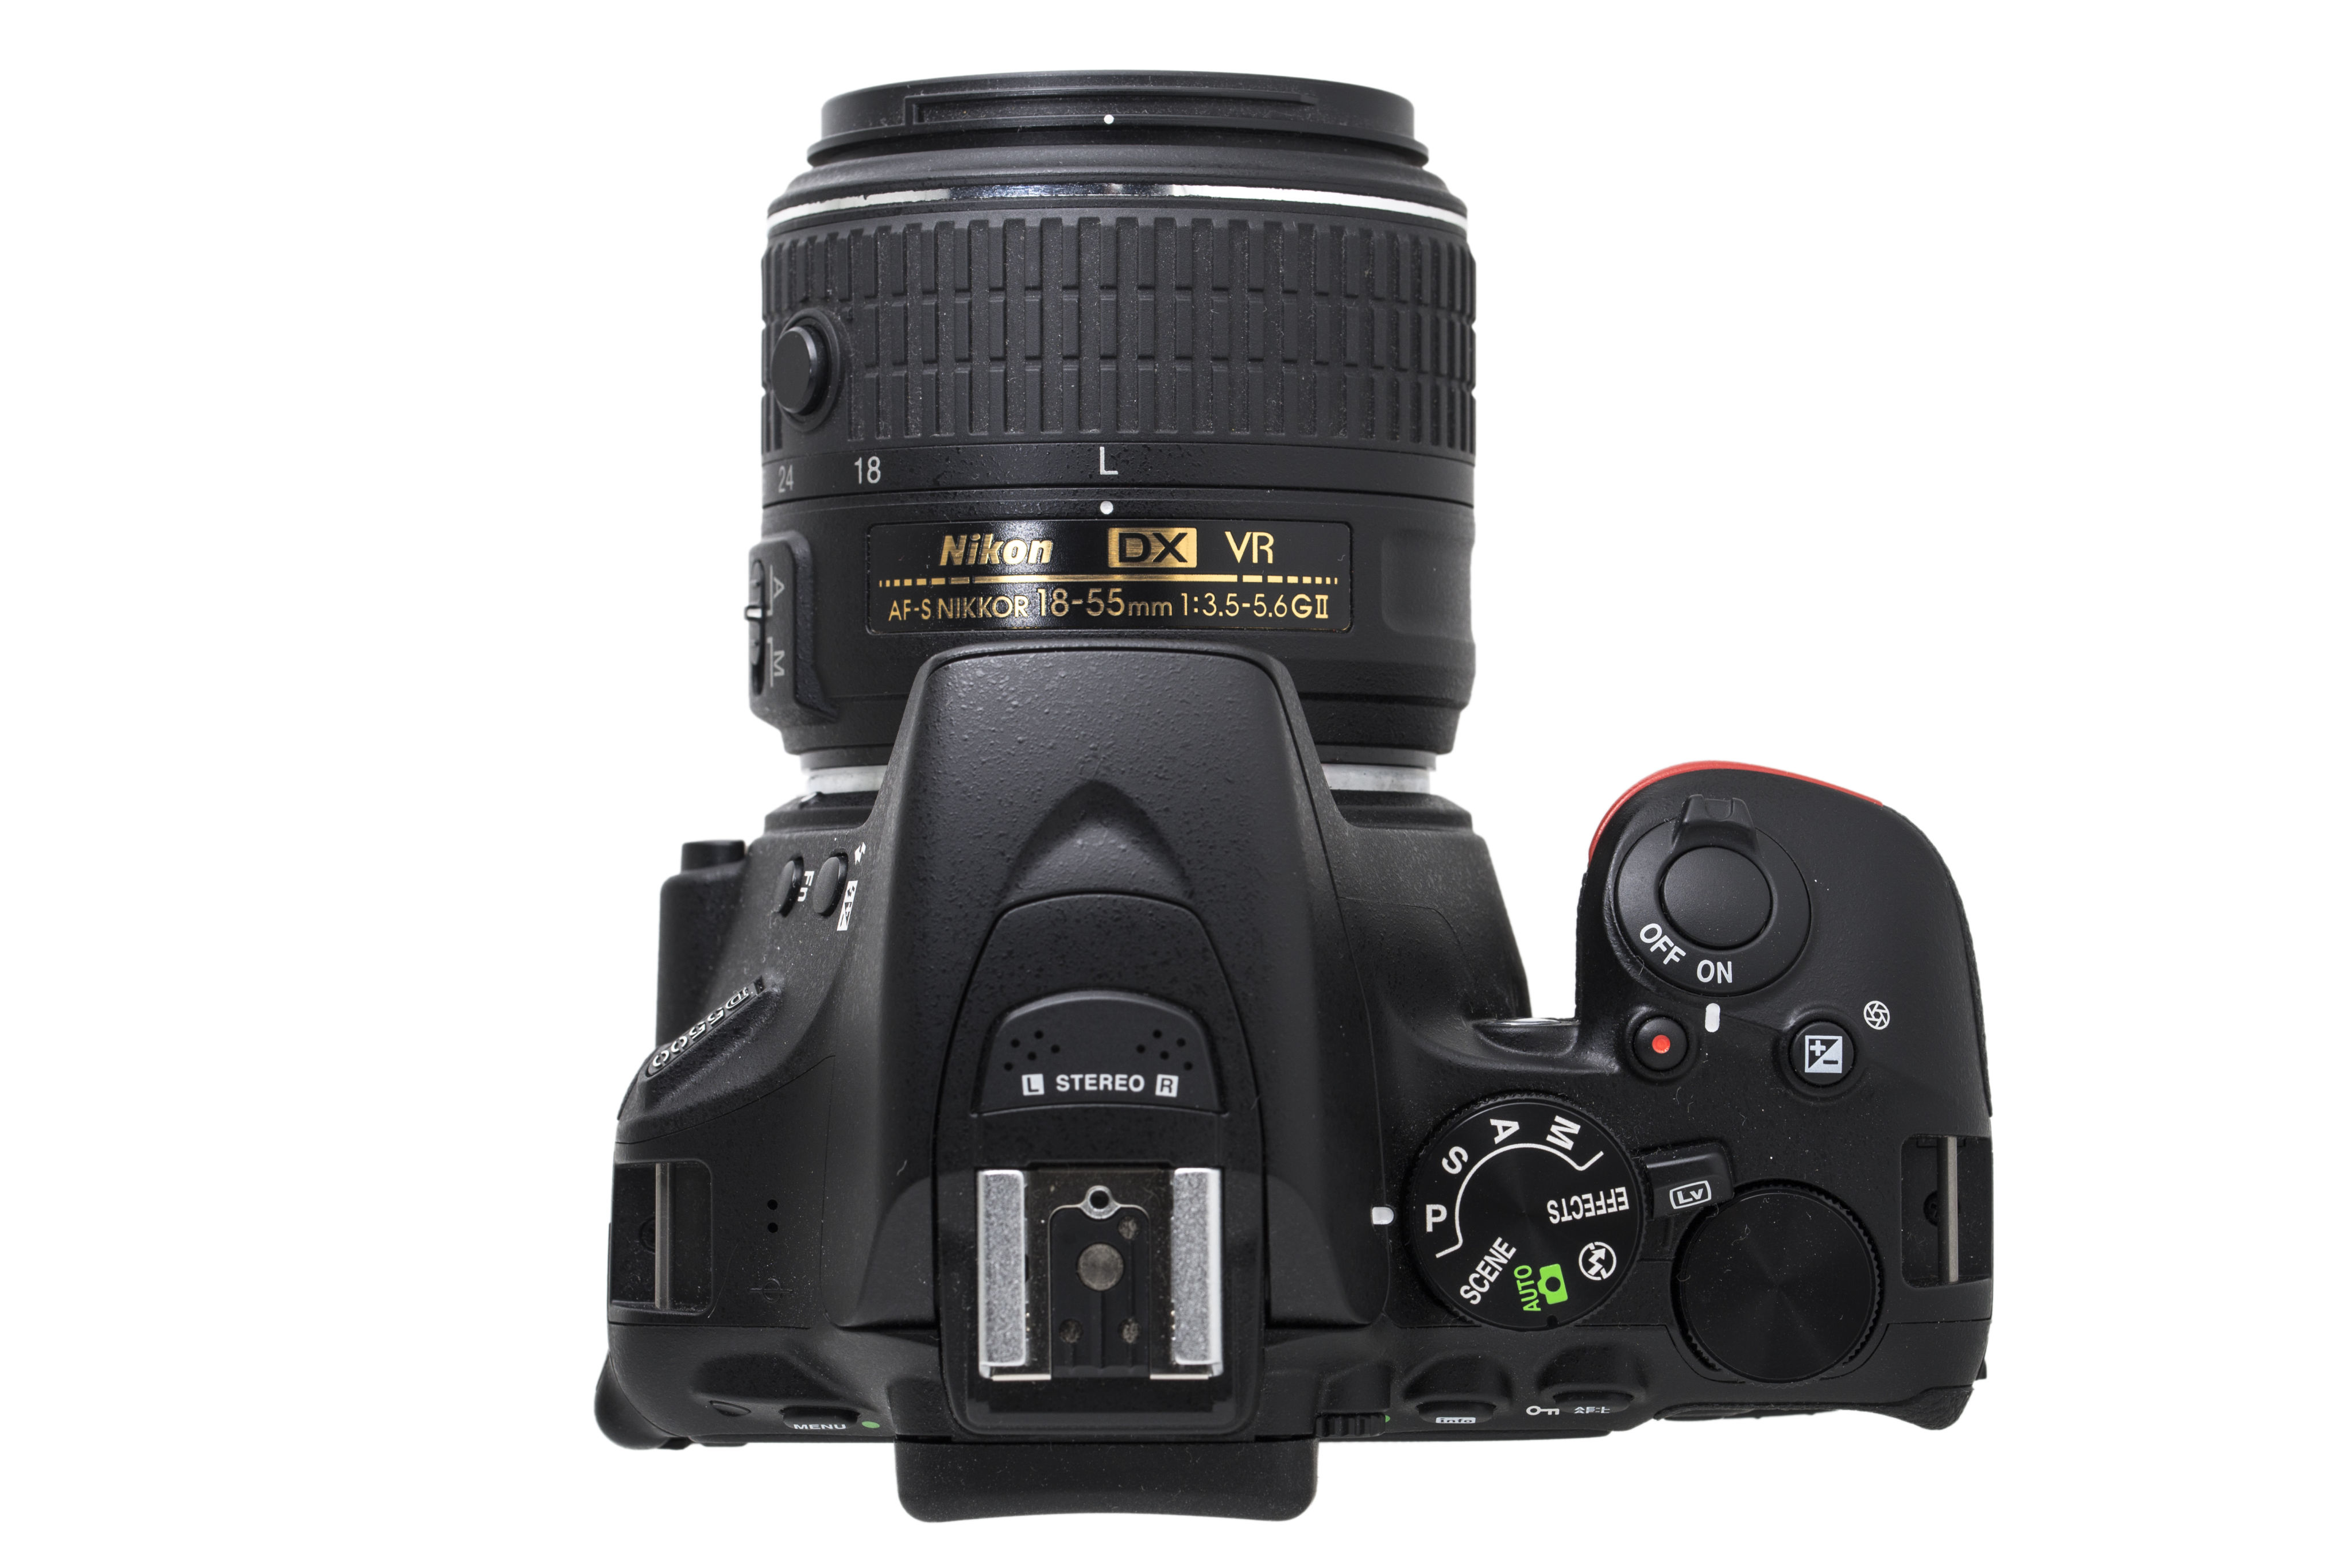 Similar but different: the control layout of the Nikon D5500 will be familiar to users of previous D5000 series cameras but its still not quite the same as on any other Nikon DSLR